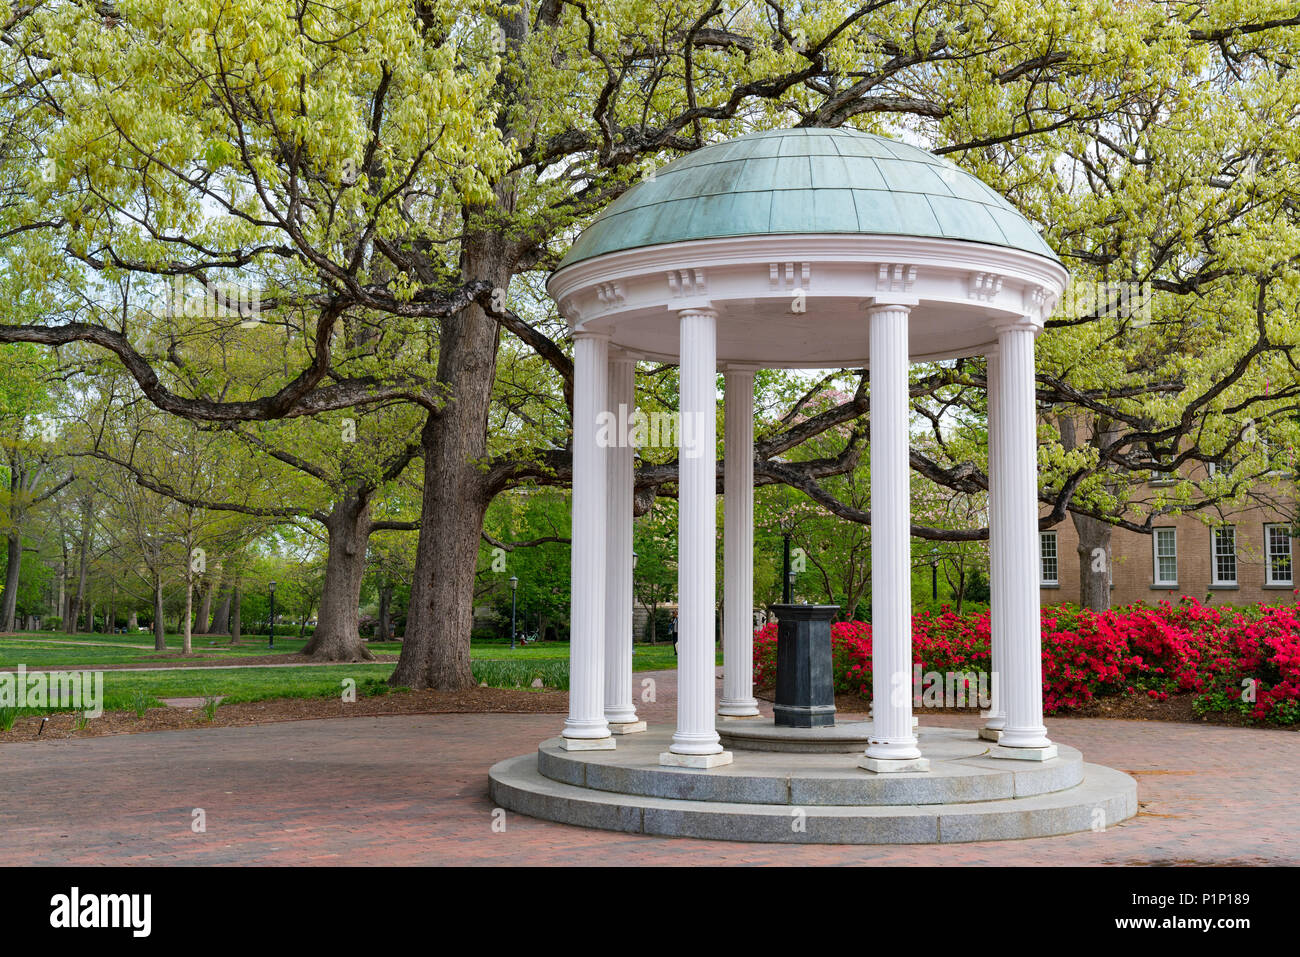 Flowers Bloom in Spring at the Old Well Rotunda at University of North Carolina in Chapel Hill - Stock Image